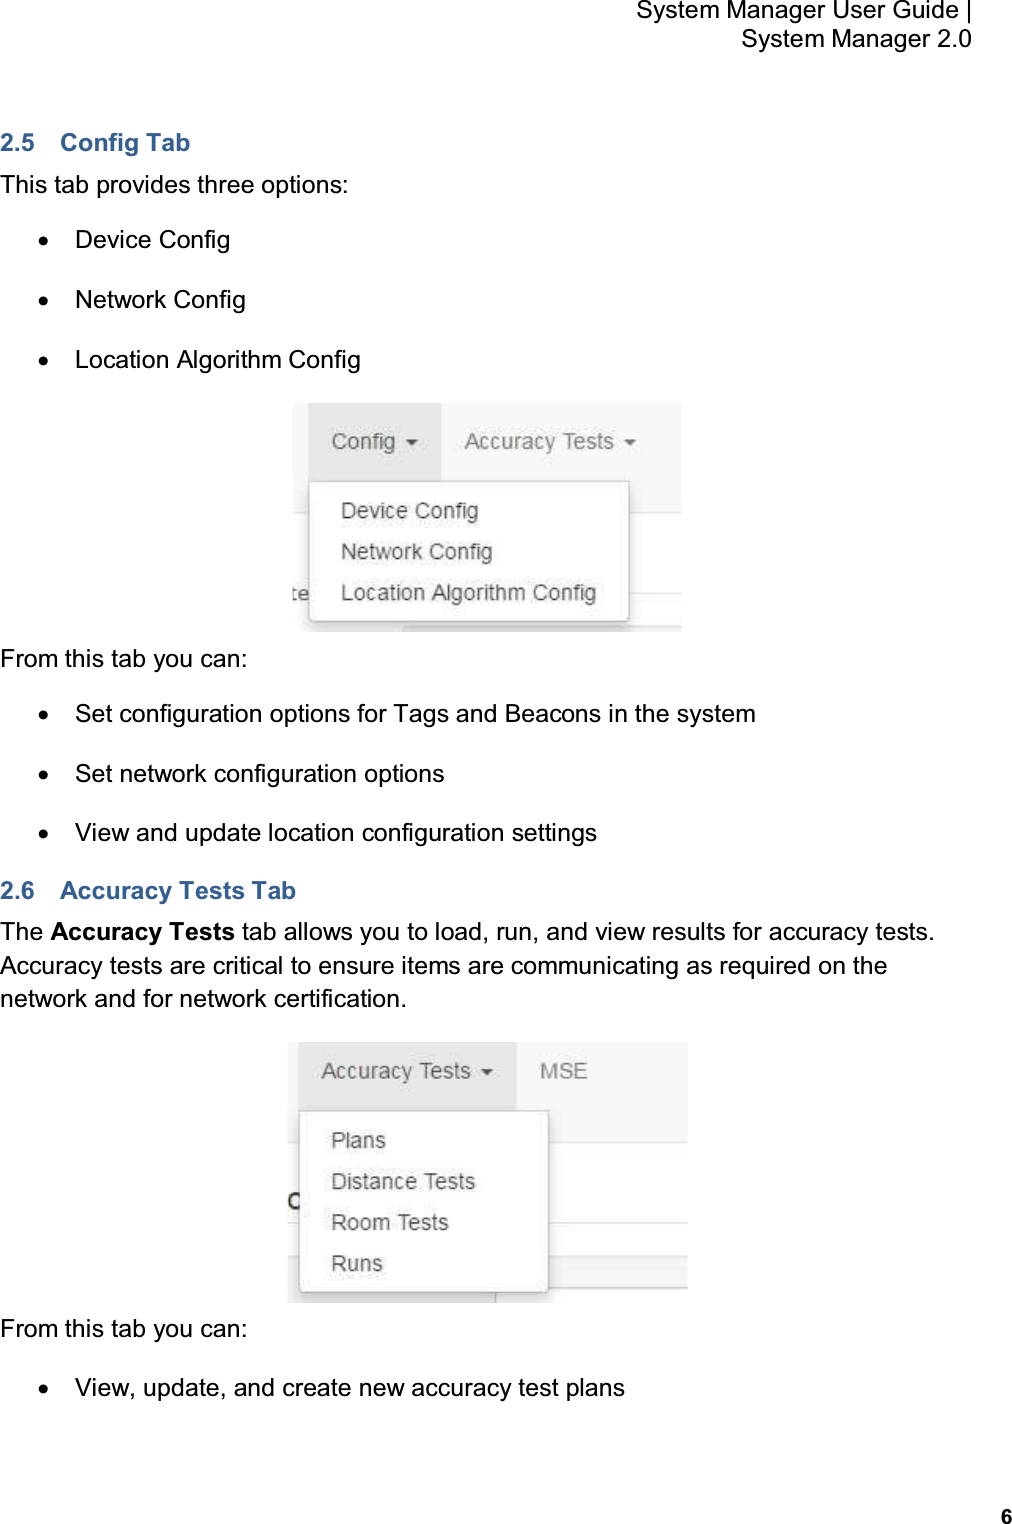 6 System Manager User Guide    System Manager 2.0 2.5  Config Tab This tab provides three options: •  Device Config •  Network Config •  Location Algorithm Config  From this tab you can: •  Set configuration options for Tags and Beacons in the system •  Set network configuration options •  View and update location configuration settings 2.6  Accuracy Tests Tab The Accuracy Tests tab allows you to load, run, and view results for accuracy tests.  Accuracy tests are critical to ensure items are communicating as required on the network and for network certification.  From this tab you can: •  View, update, and create new accuracy test plans